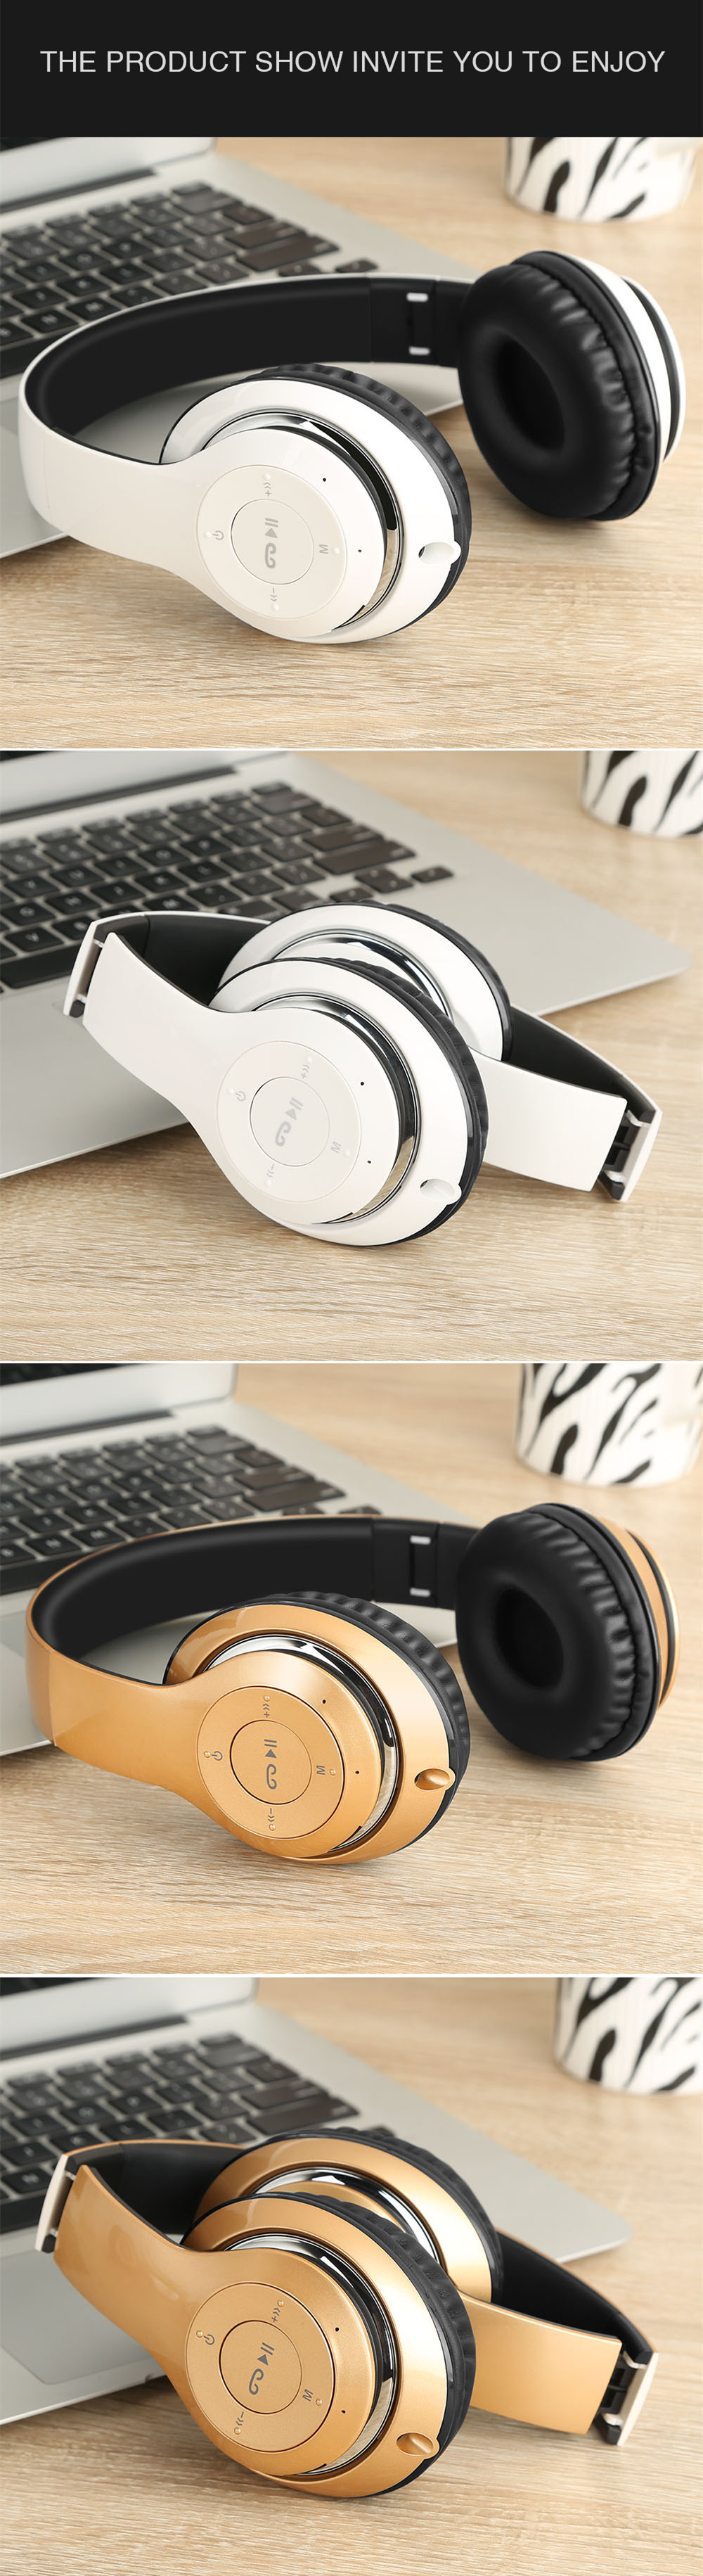 779c27c48bd ... 17.72-18.41/piece Sound Intone BT-09 Bluetooth Headphones Wireless with Mic  Support TF Card FM Radio Stereo Headset For iPhone Samsung Sony Xiaomi Tips!